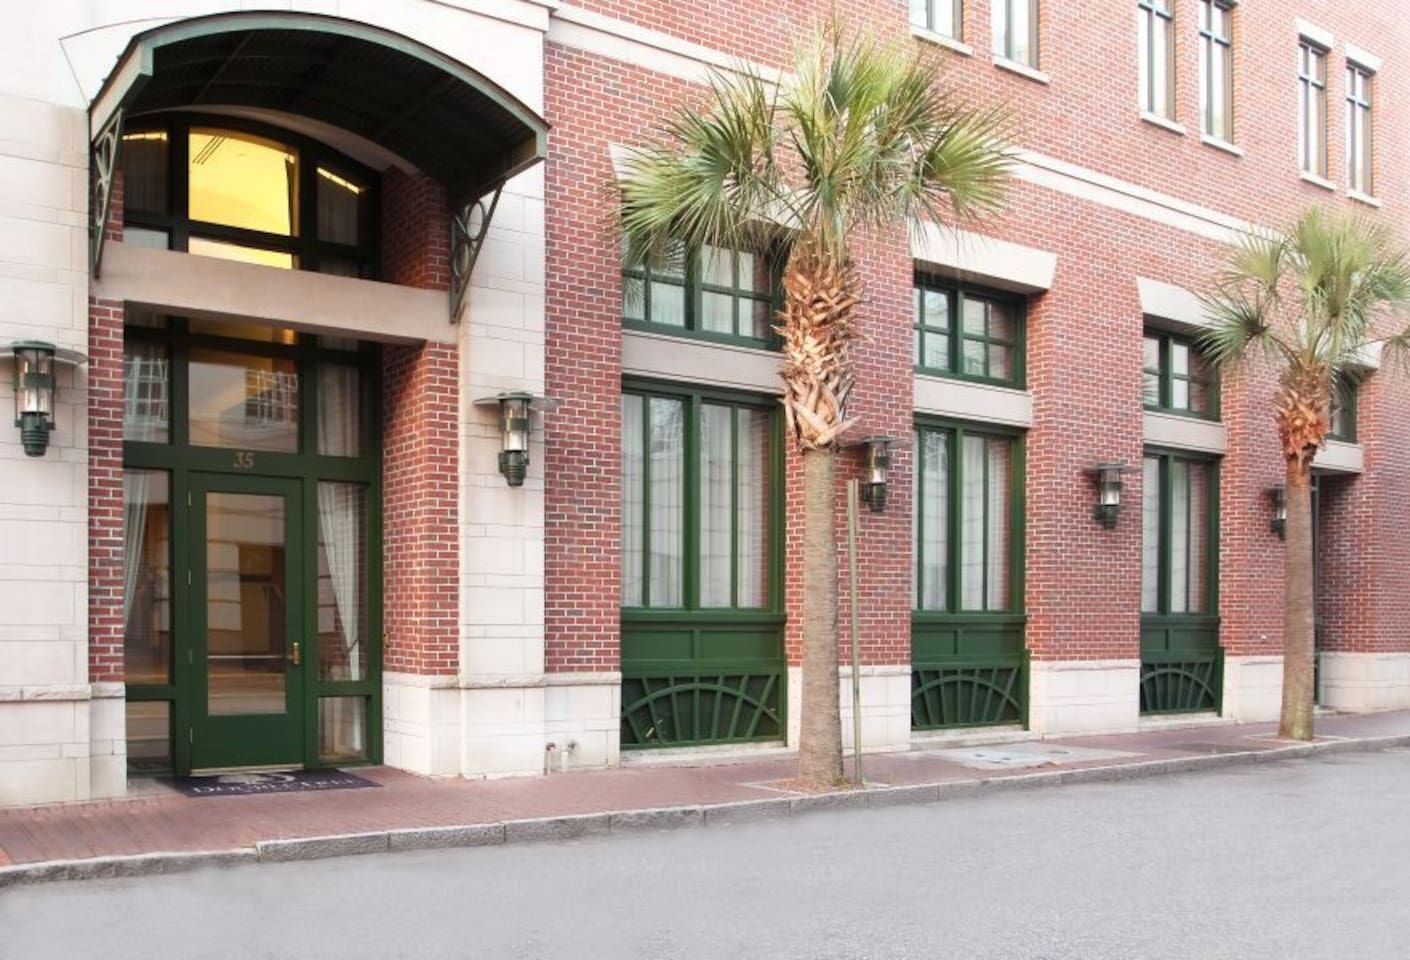 Hotel On Market is located centrally in Charleston's Historic District